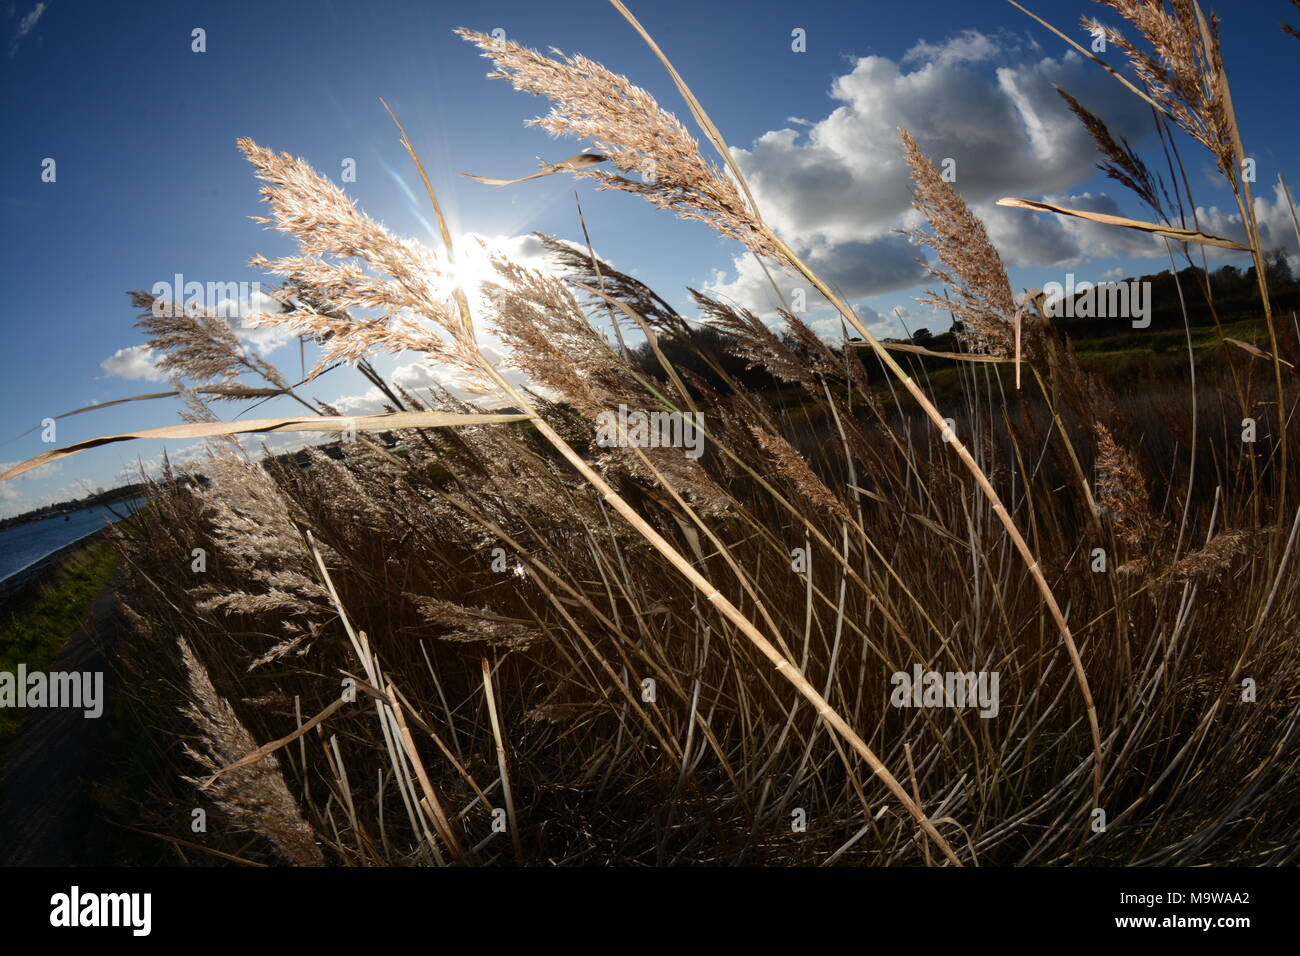 Reeds at Cobnor Point, Chichester Harbour - Stock Image